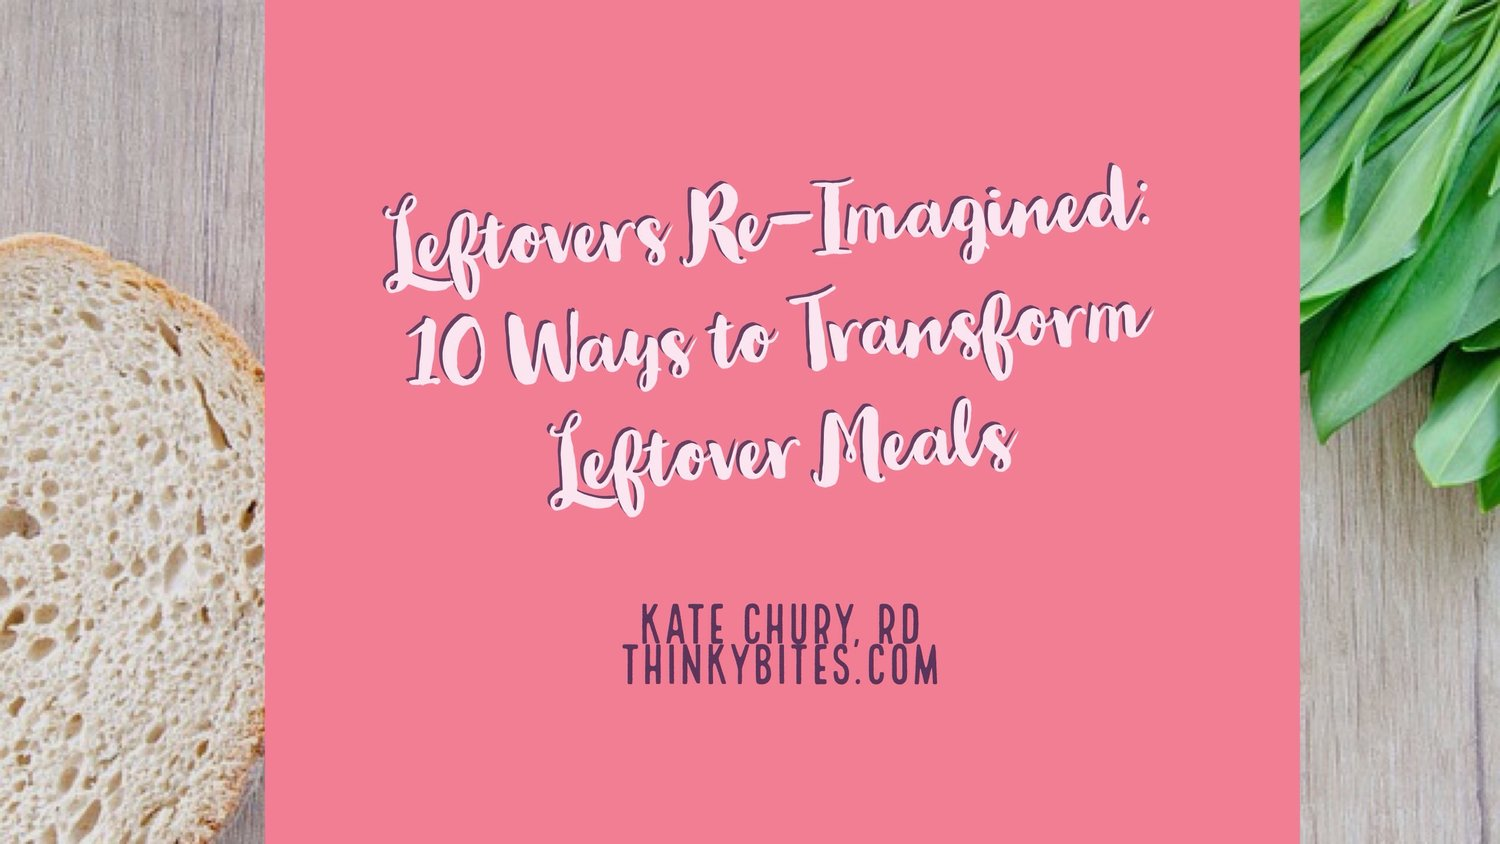 Leftovers Re-Imagined: 10 Ways to Transform Leftover Meals